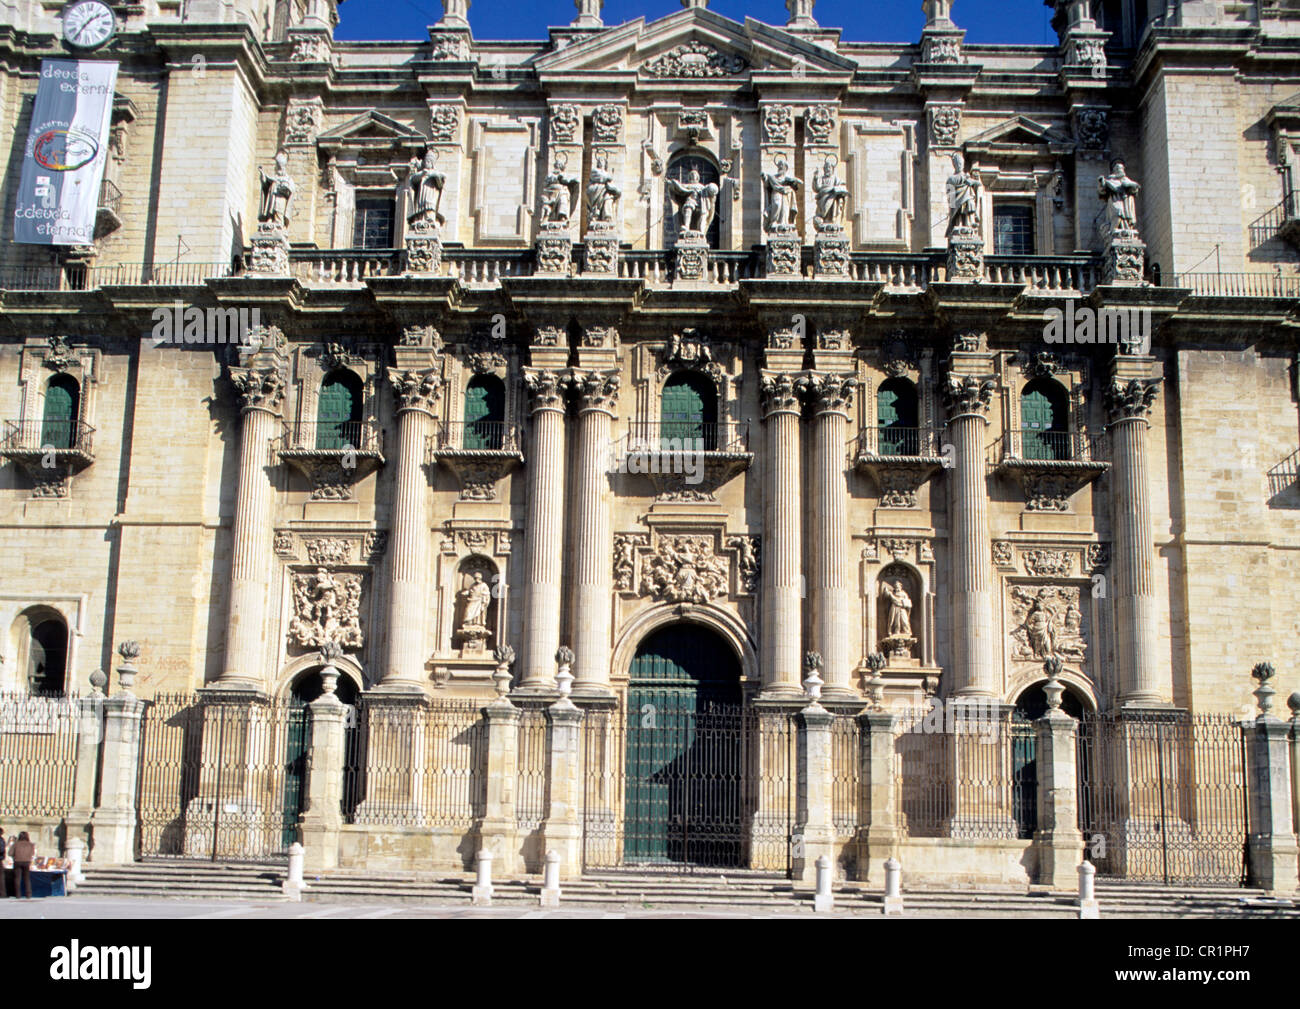 Spain, Andalusia, Jaen, the cathedral - Stock Image